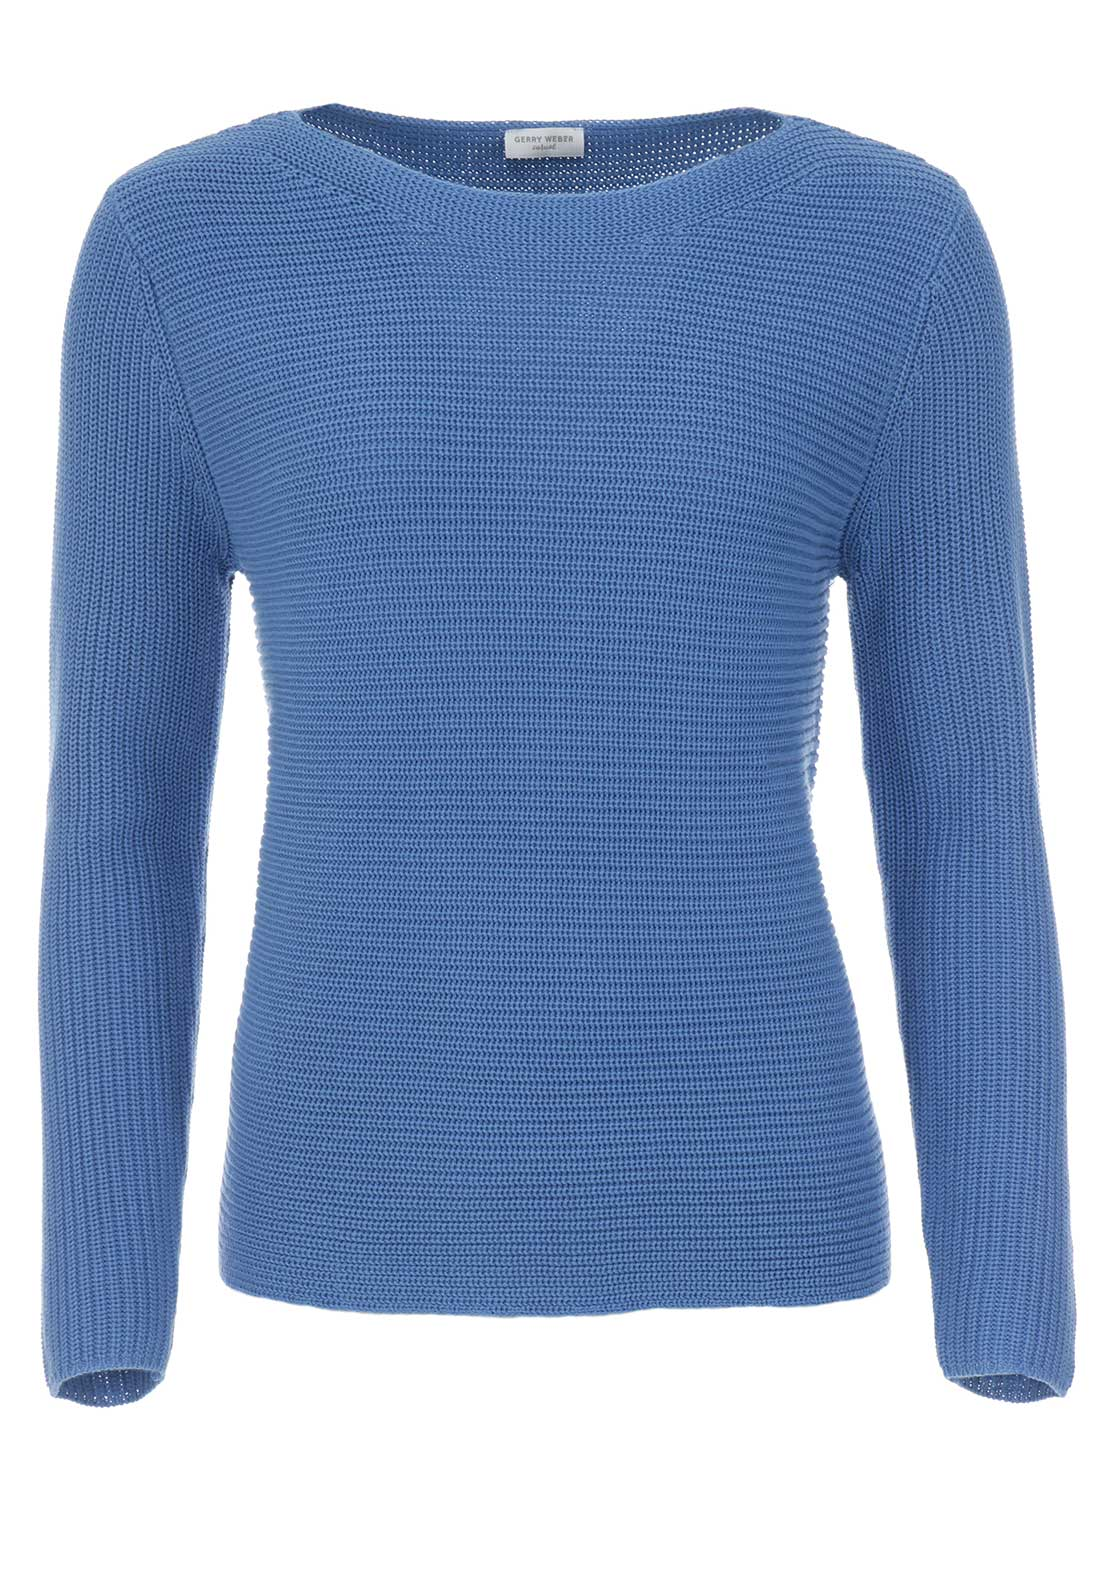 Gerry Weber Chunky Knit Jumper, Blue